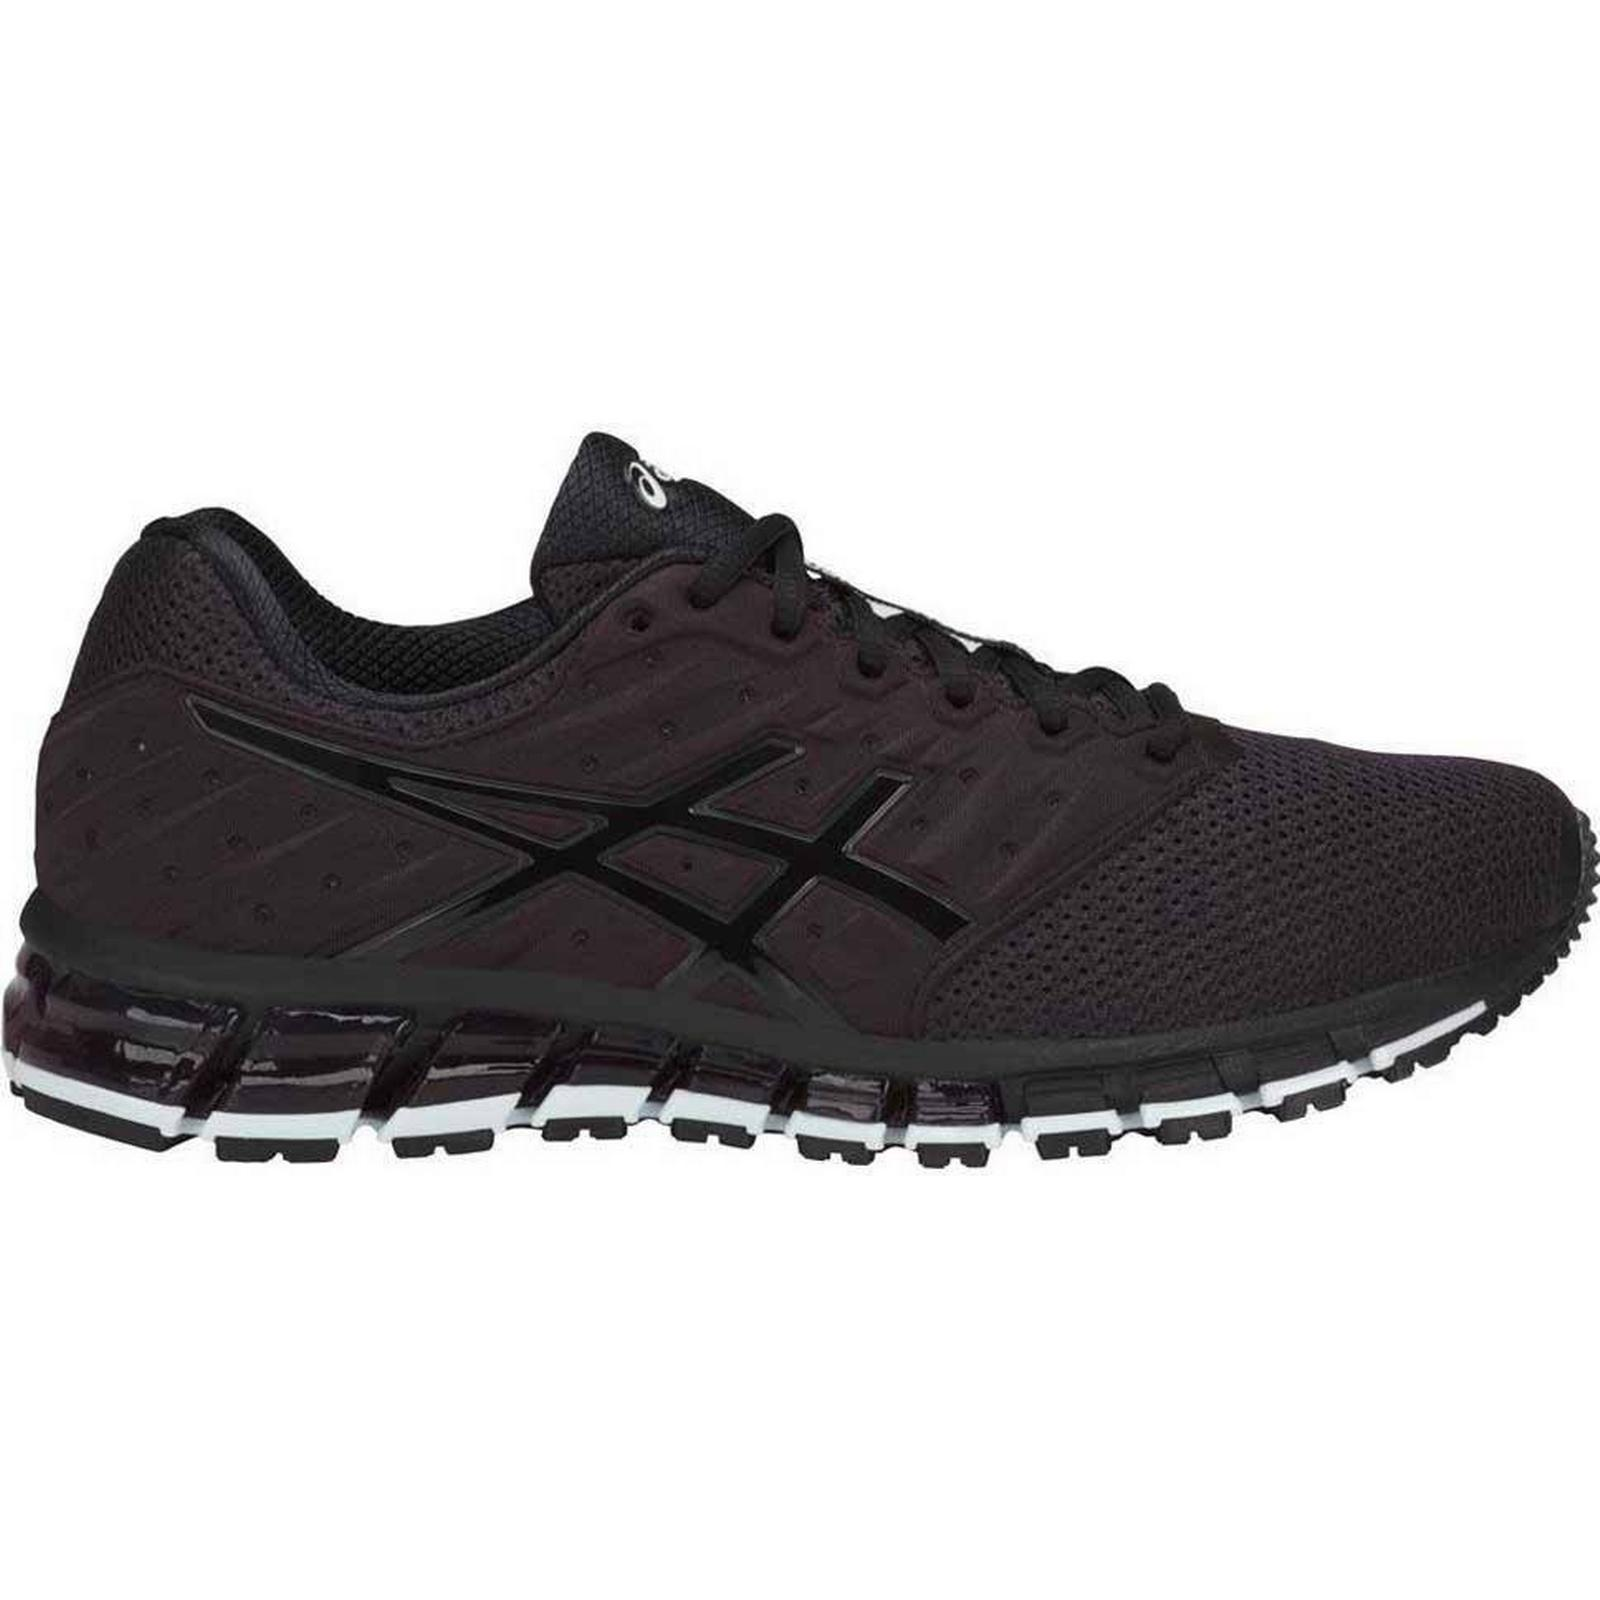 Men's/Women's:Asics Gel Quantum 180 2 the Mx: Special Offers at the 2 End of the Year 83e42b